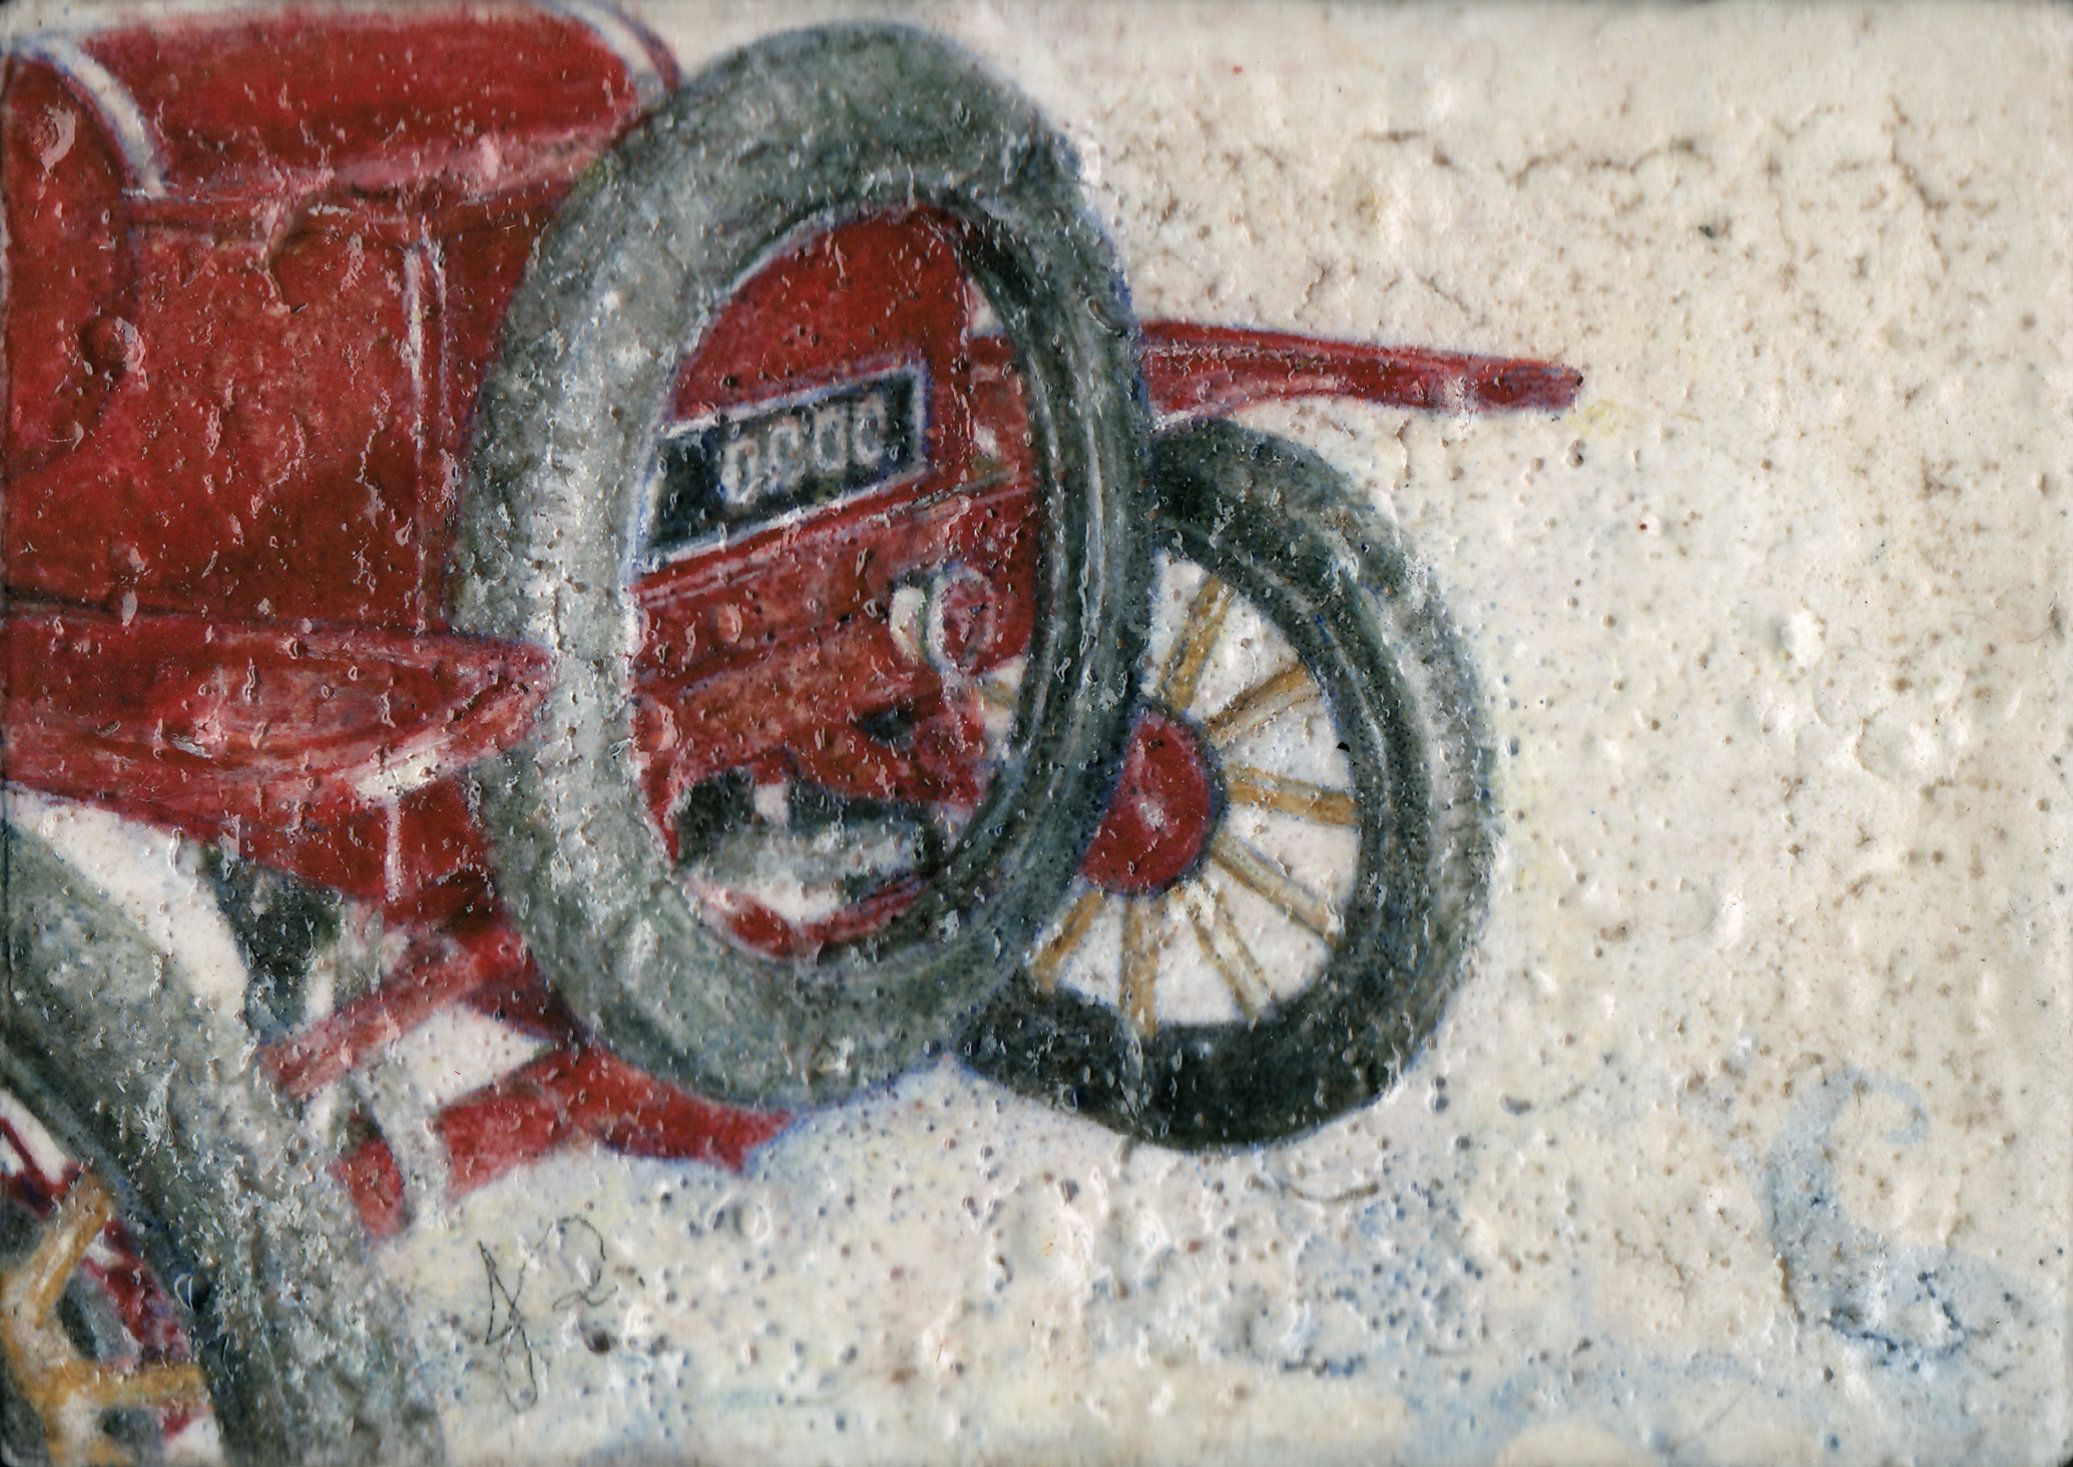 Ford Model T Classic Car Painting Archival Giclee Print Realistic Vintage Motor Vehicle Red White Minimalist Art Decor Small Gift Unframed